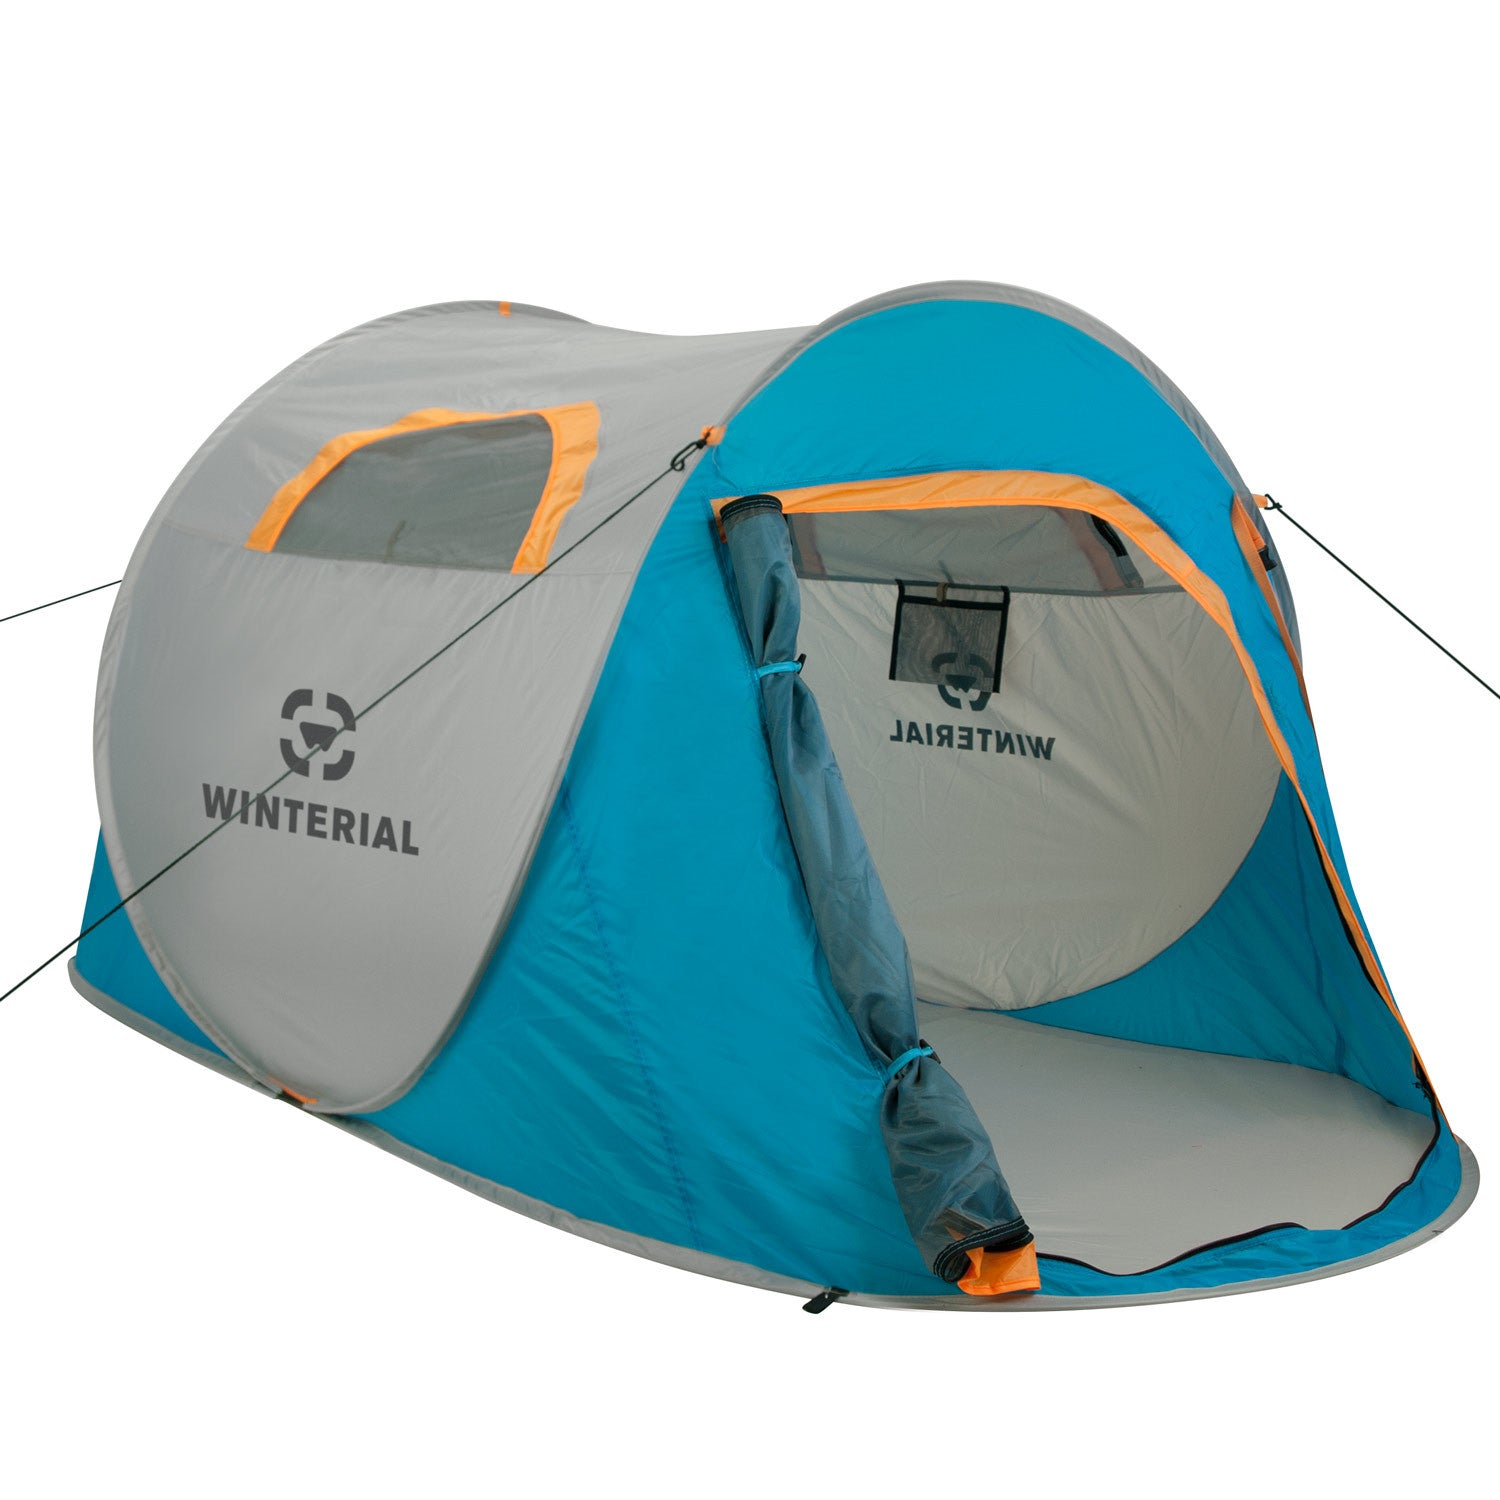 ... 2 person pop up tent blue and grey with 1 door ...  sc 1 st  Winterial.com : pop up two man tent - memphite.com